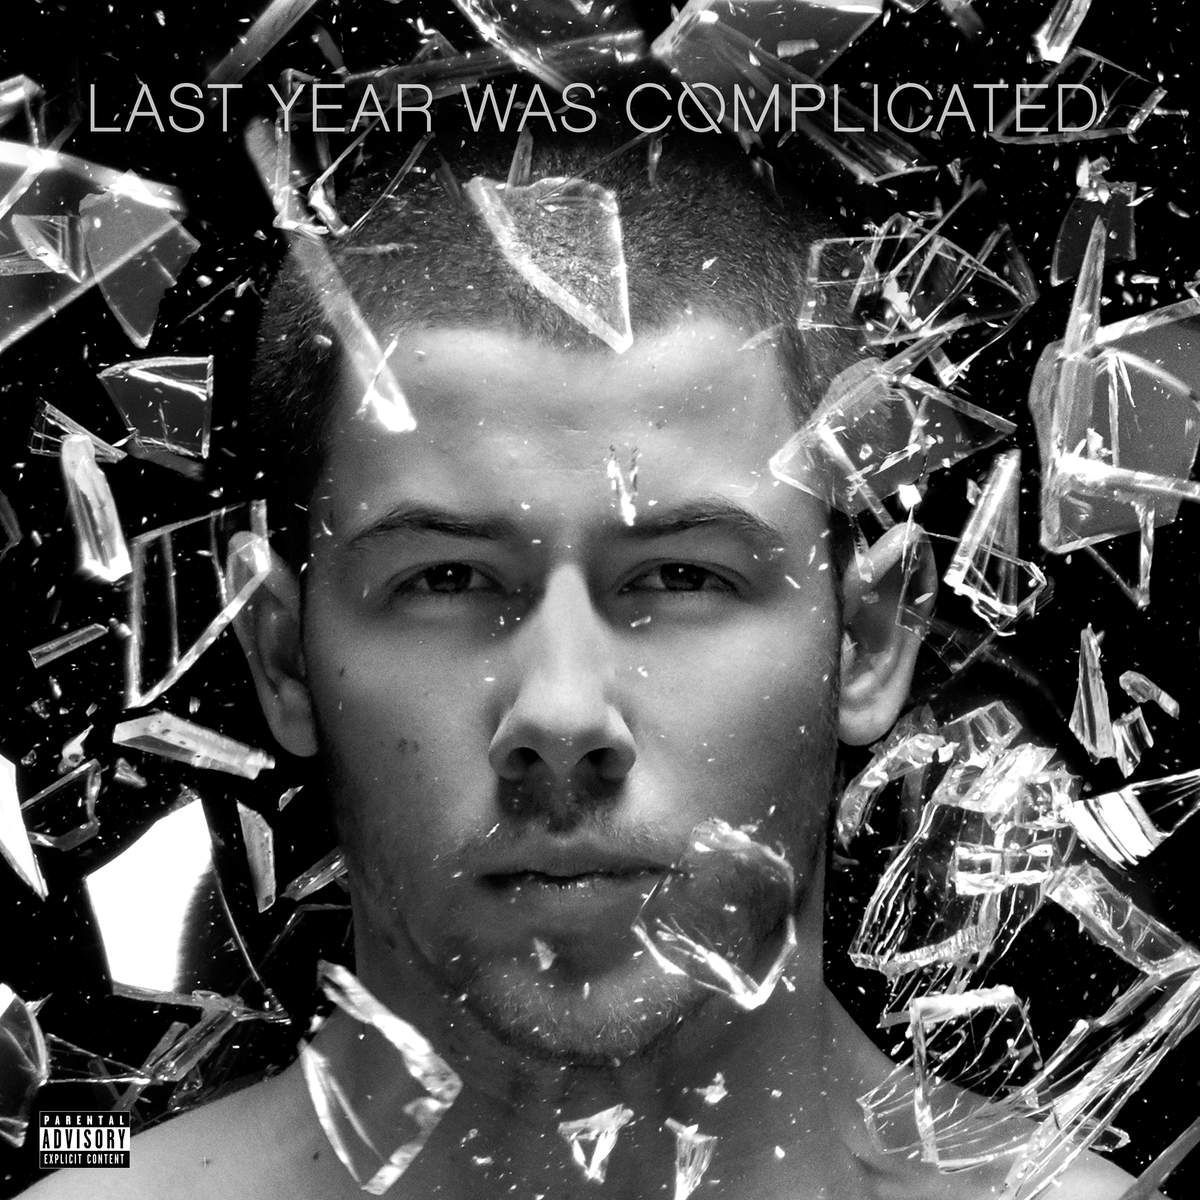 Nick Jonas - Last Year Was Complicated album cover